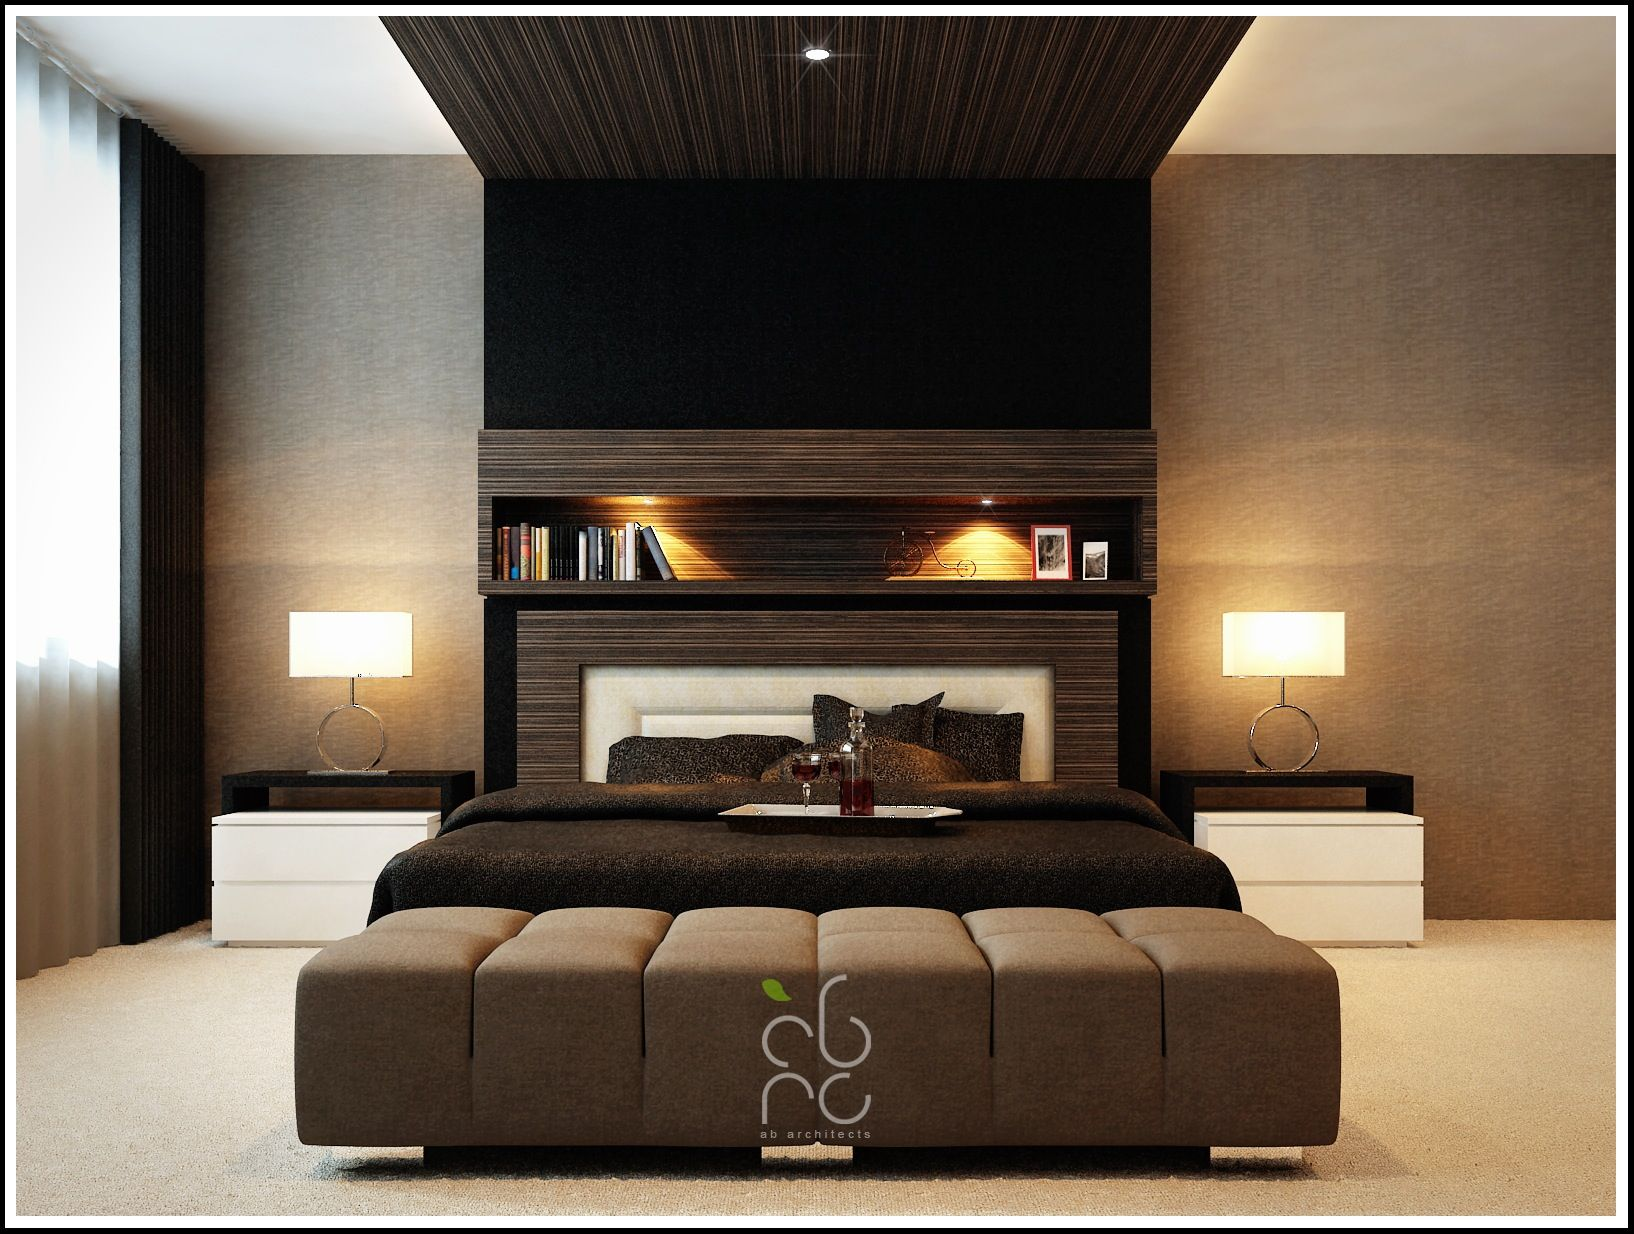 Just Marvelous Earth Tones With Images Relaxing Bedroom